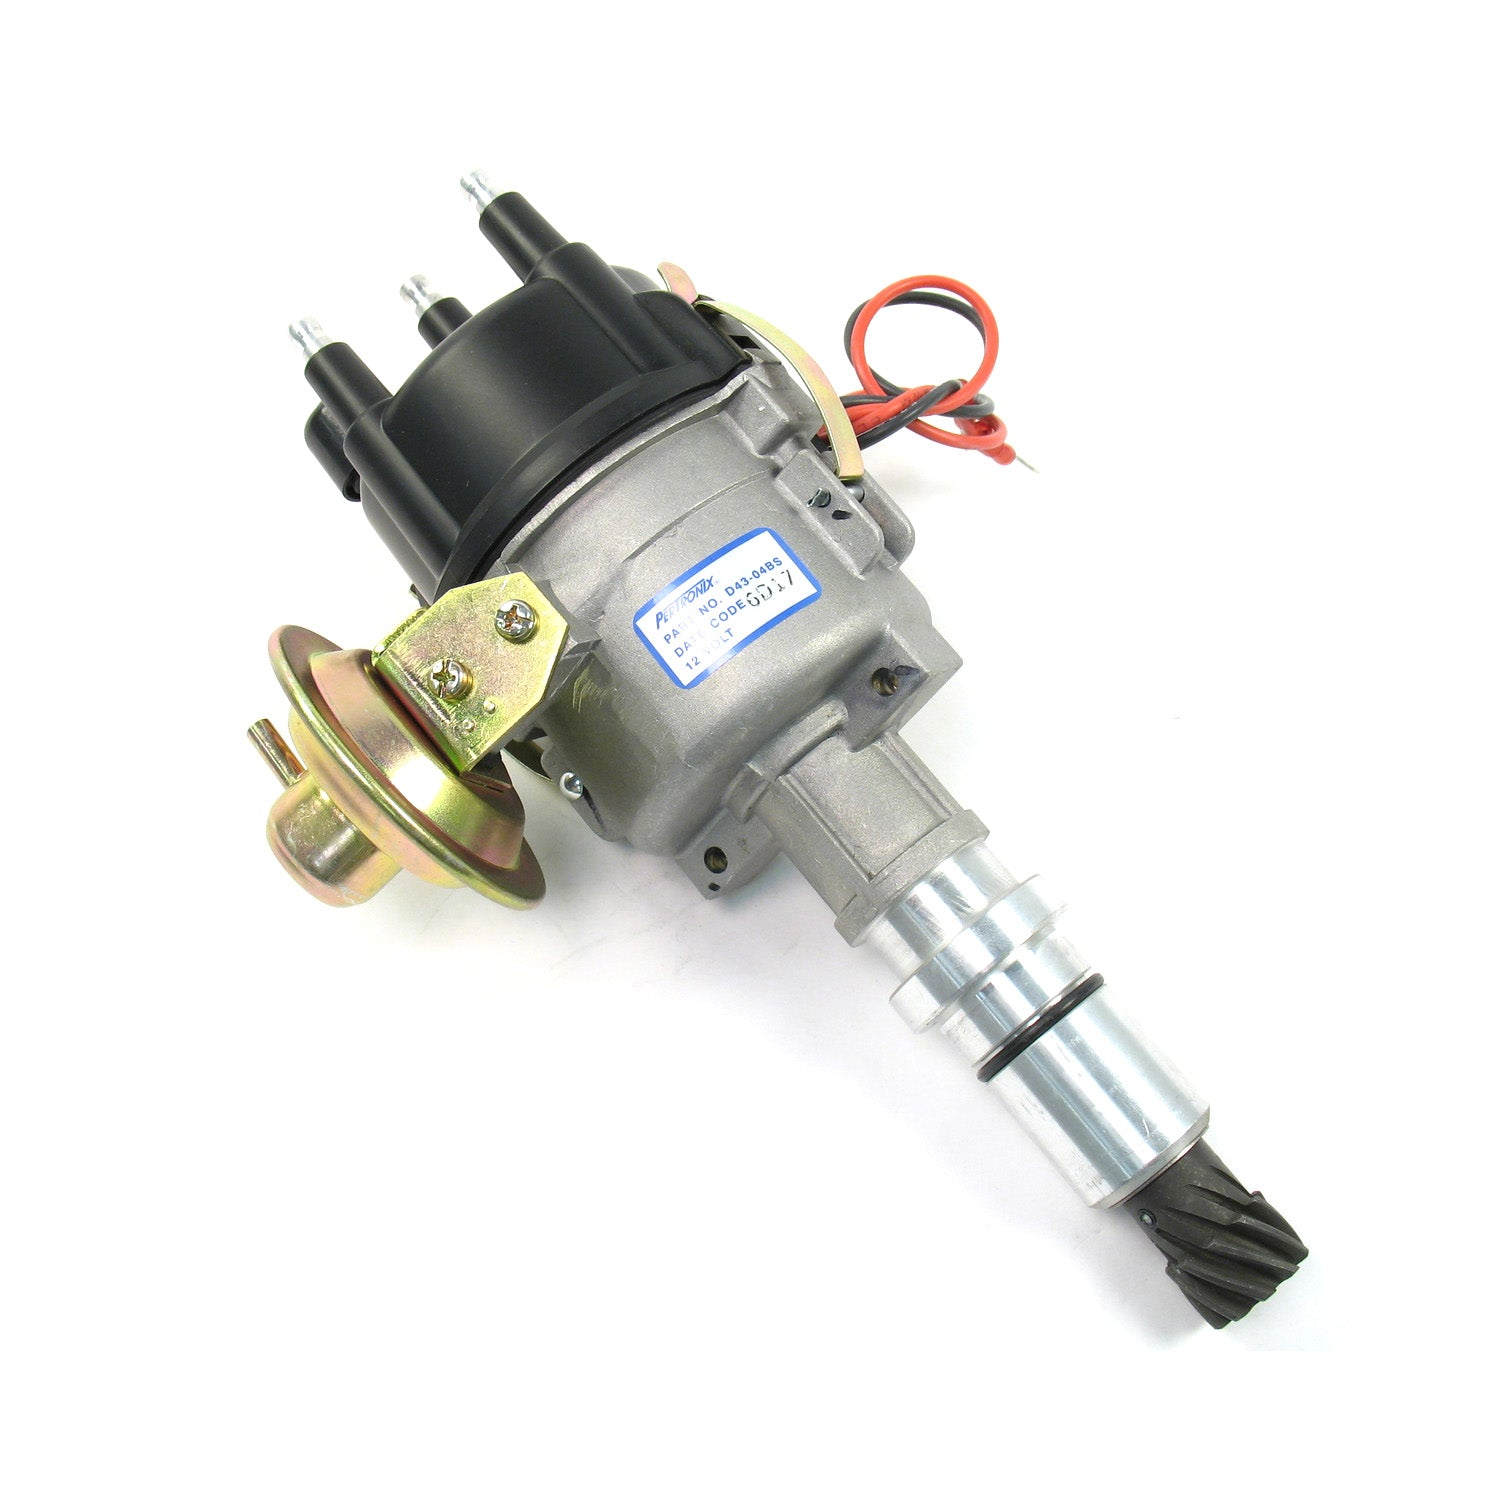 PerTronix D43-04BM Distributor Industrial 4 cyl